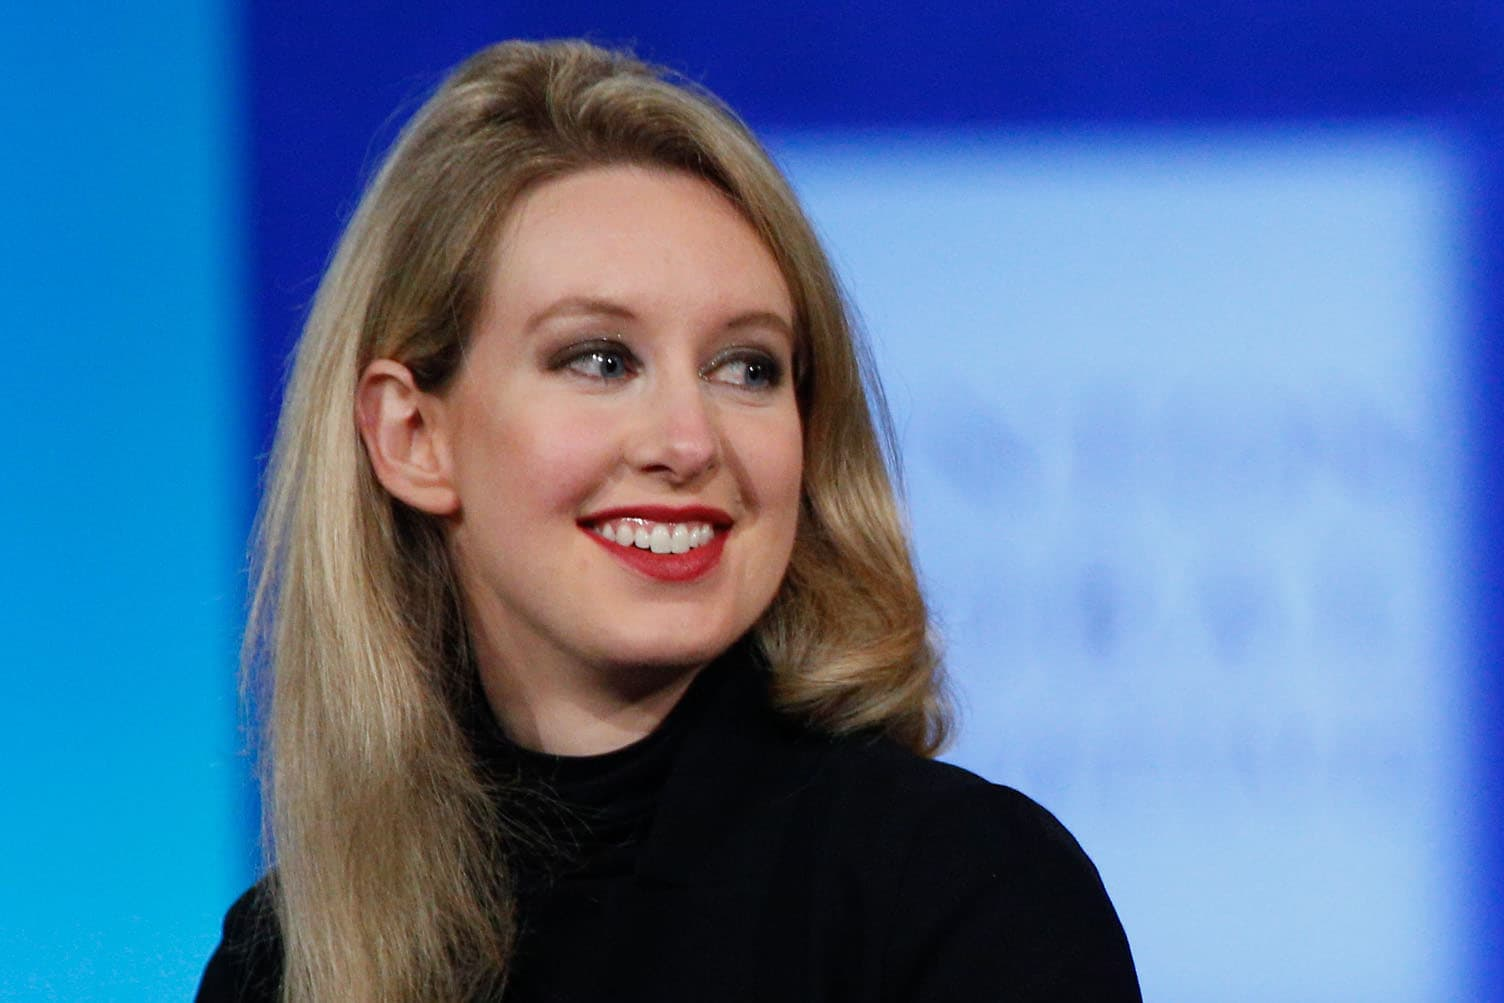 Elizabeth Holmes, CEO of Theranos